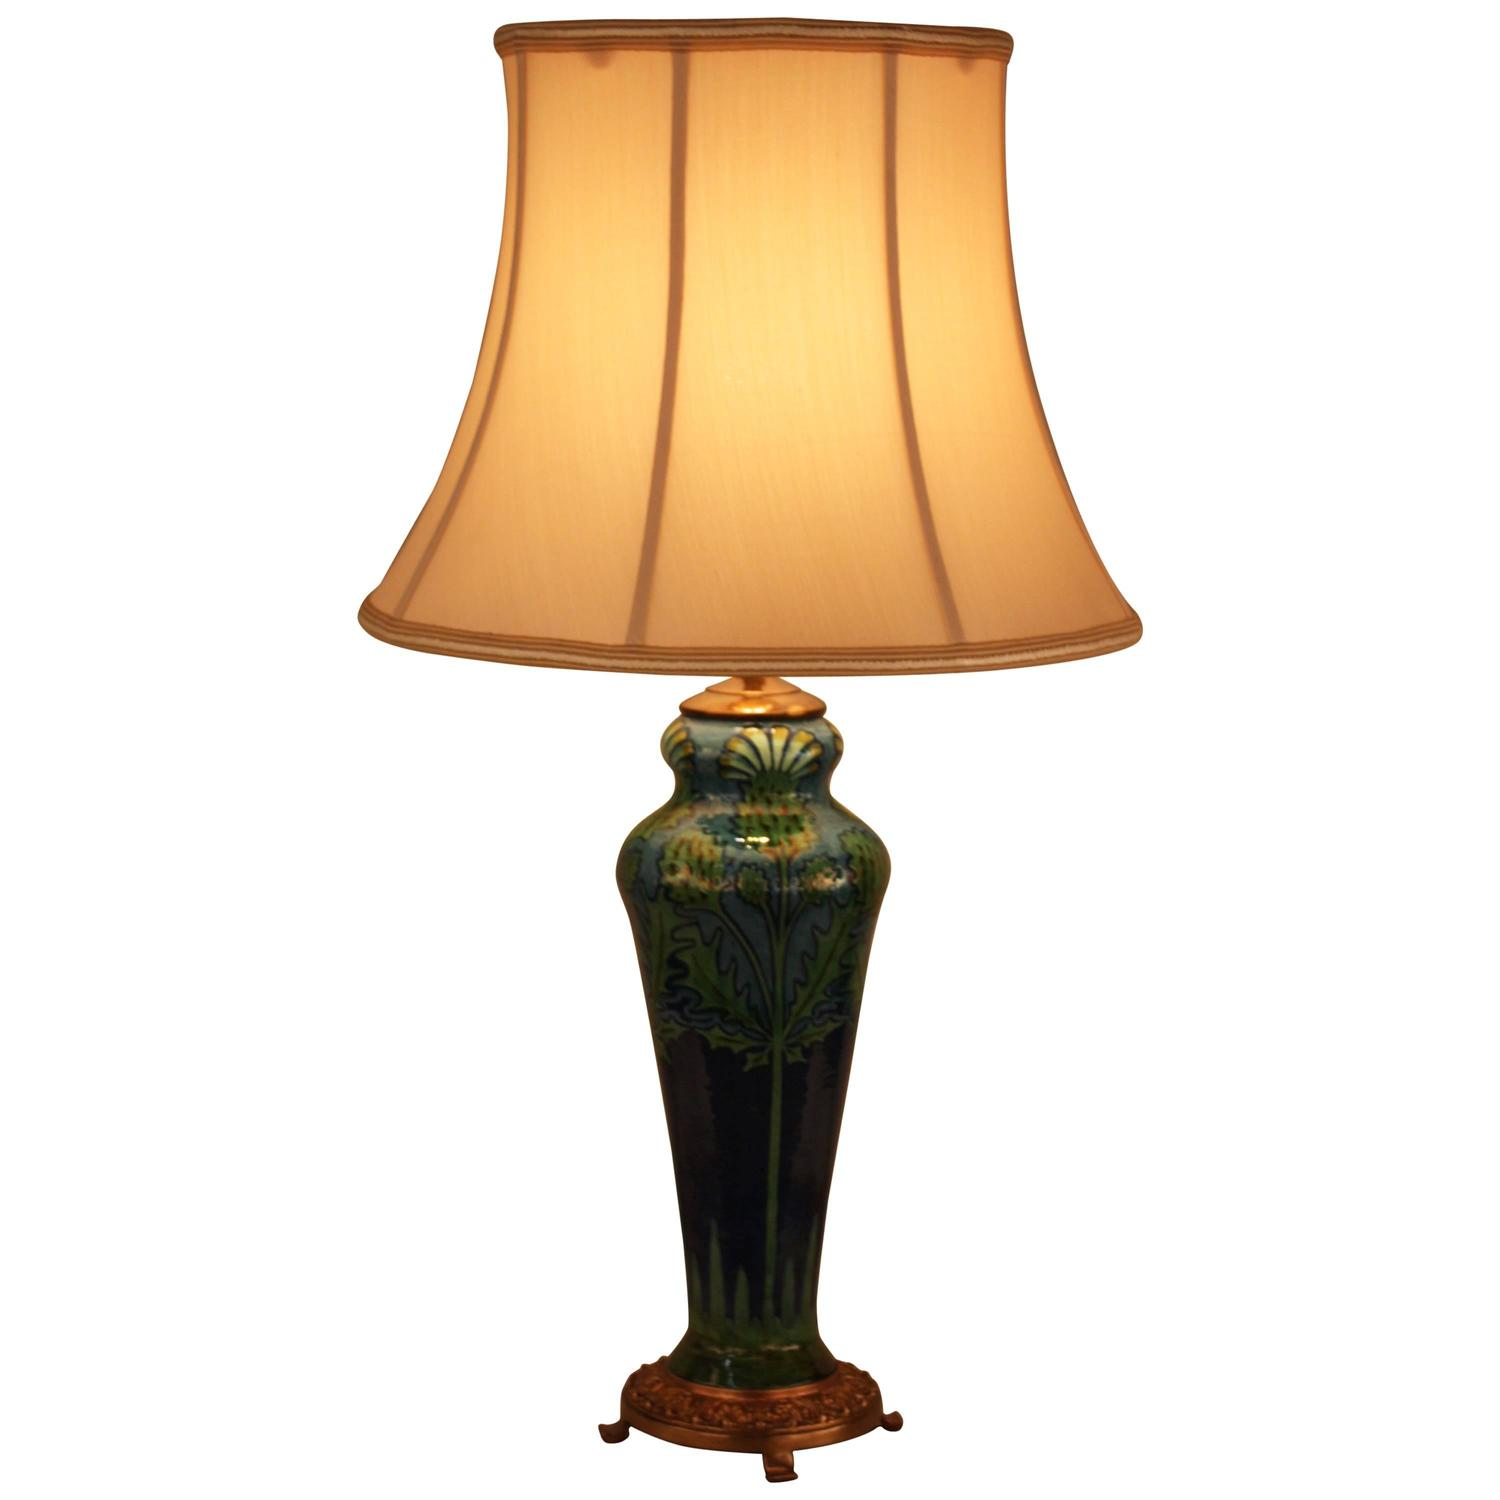 French Art Deco Pottery Table Lamp At 1stdibs